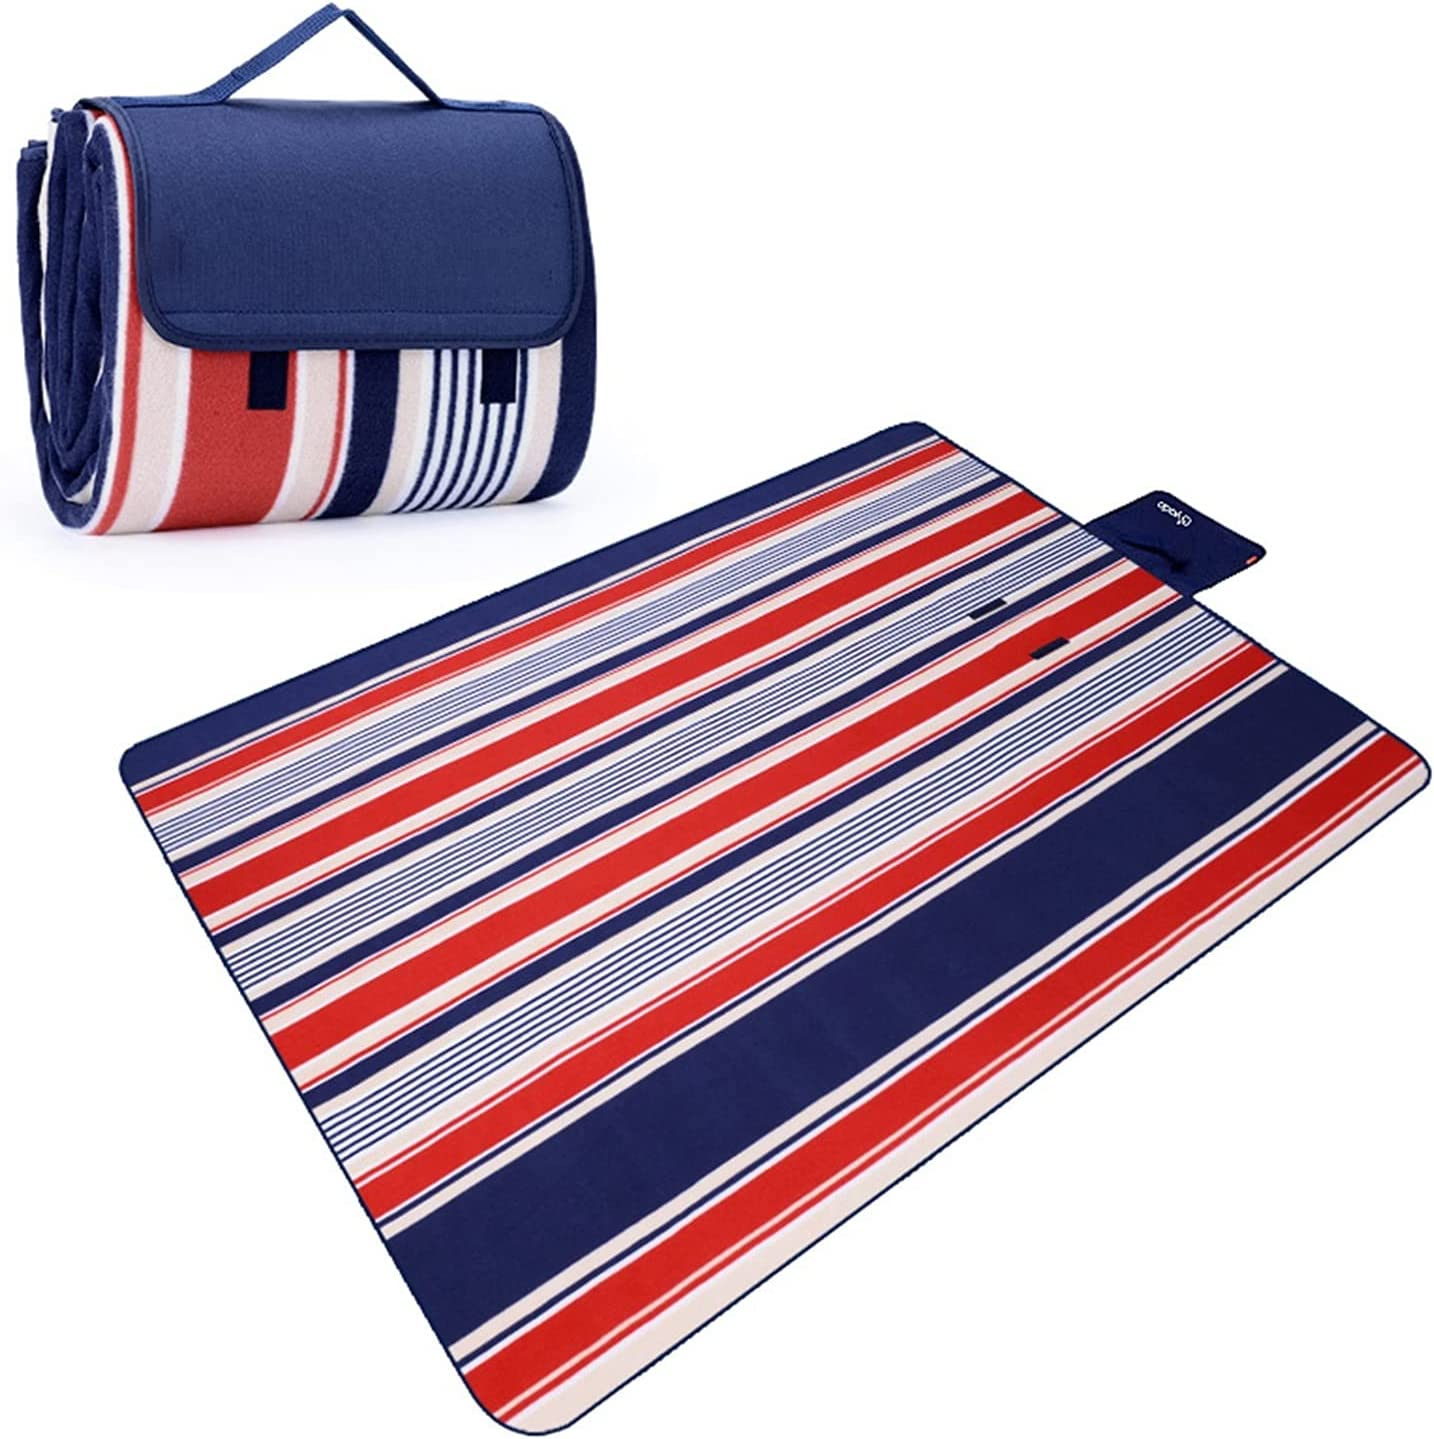 AQHXLS Foldable and Portable Blanket 200150cm Outdoor Popular Ranking TOP6 shop is the lowest price challenge Picnic